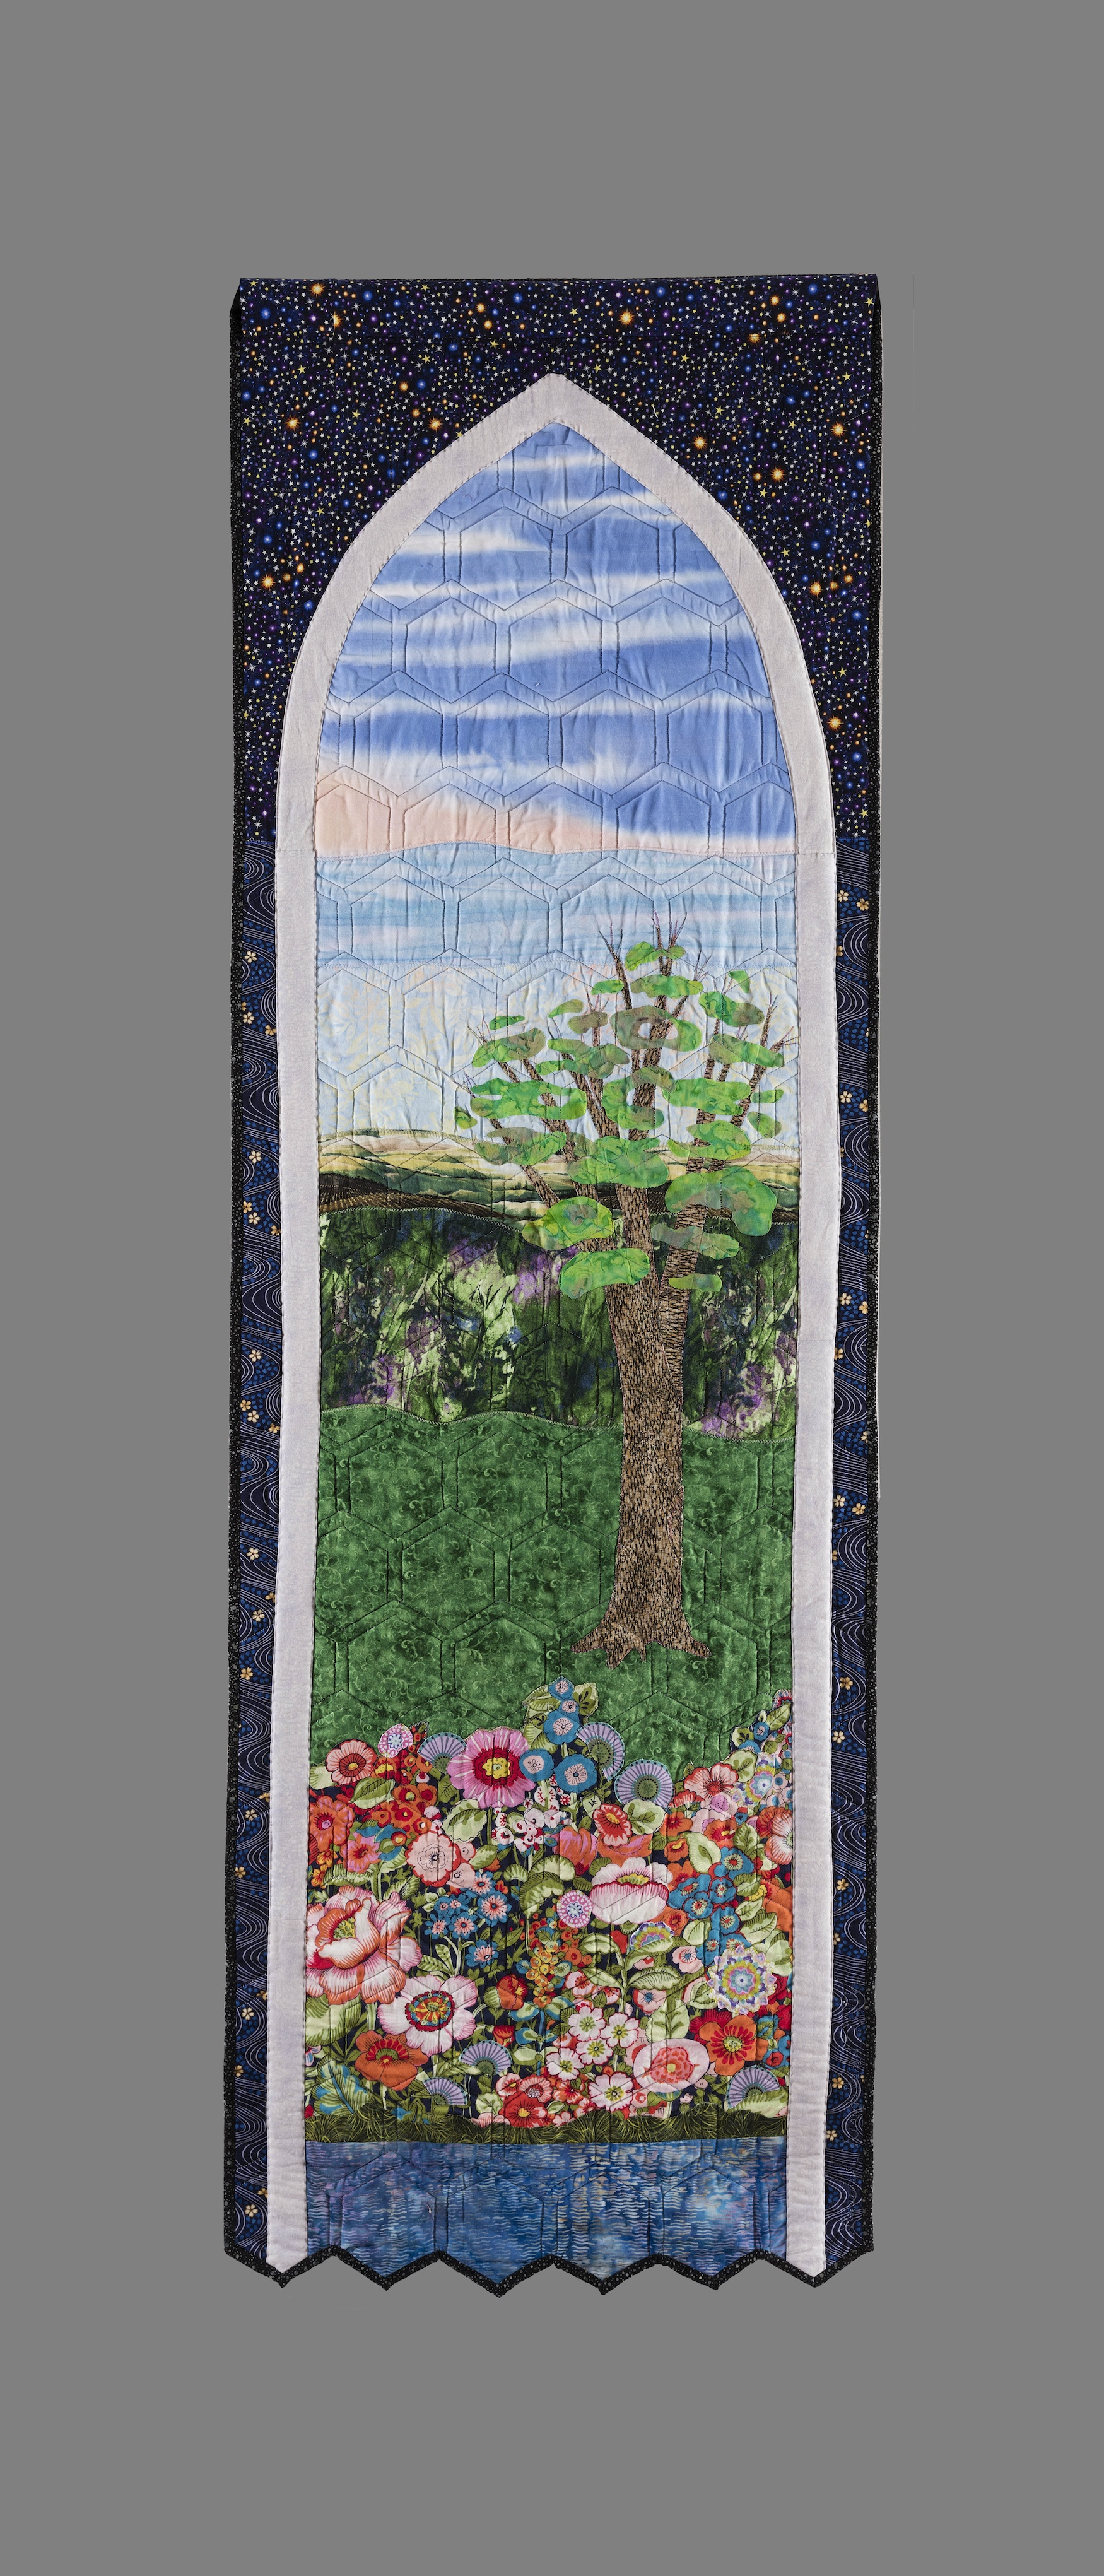 Art Quilt - Peaceful landscape through an arched window